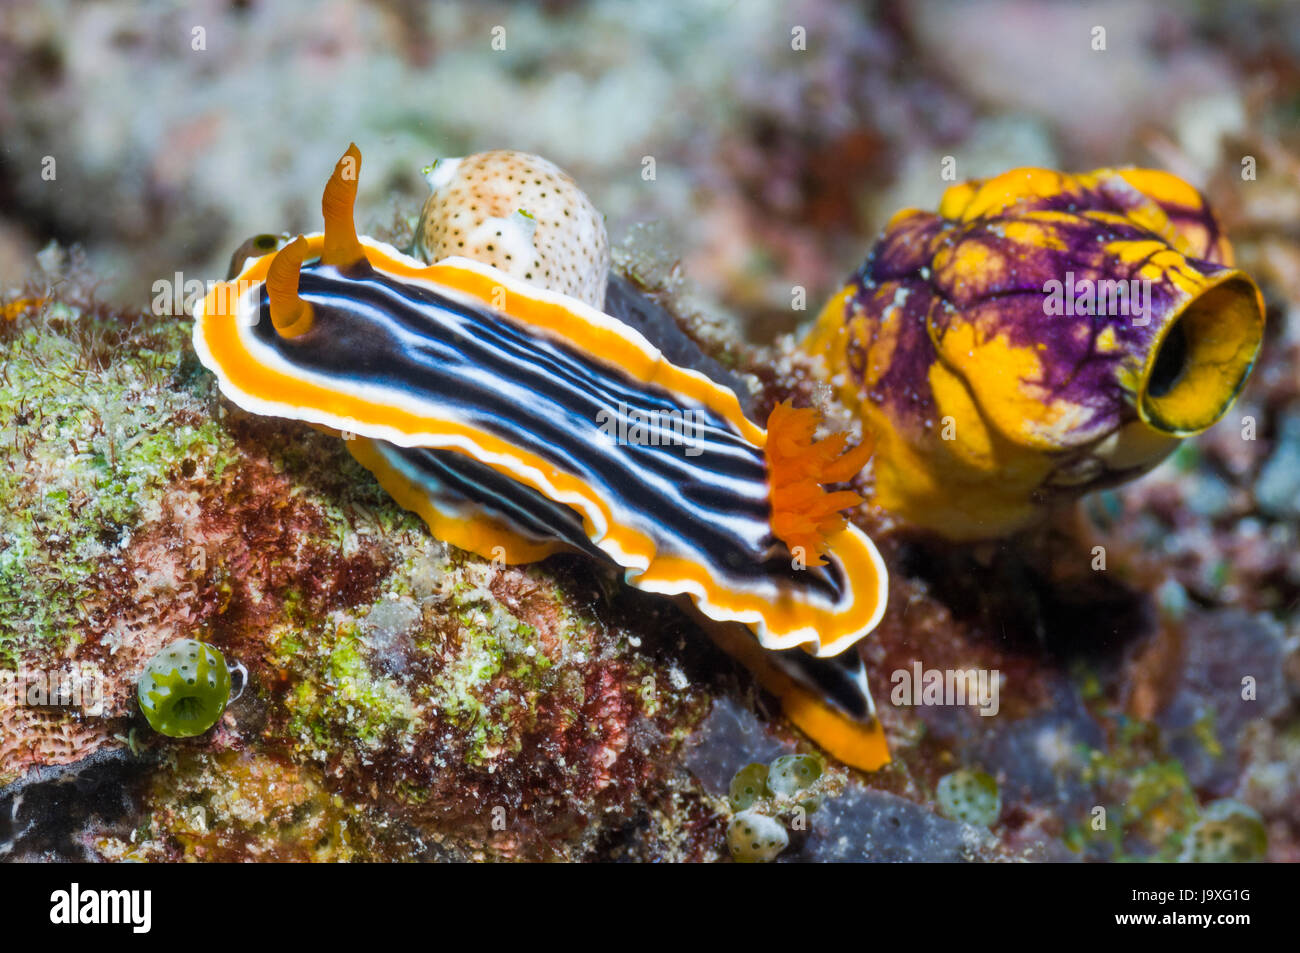 Nudibranch - Chromodoris magnifica crawling past a Golden sea squirt [Polycarpa aurata].  Lembeh, Sulawesi, Indonesia. Stock Photo